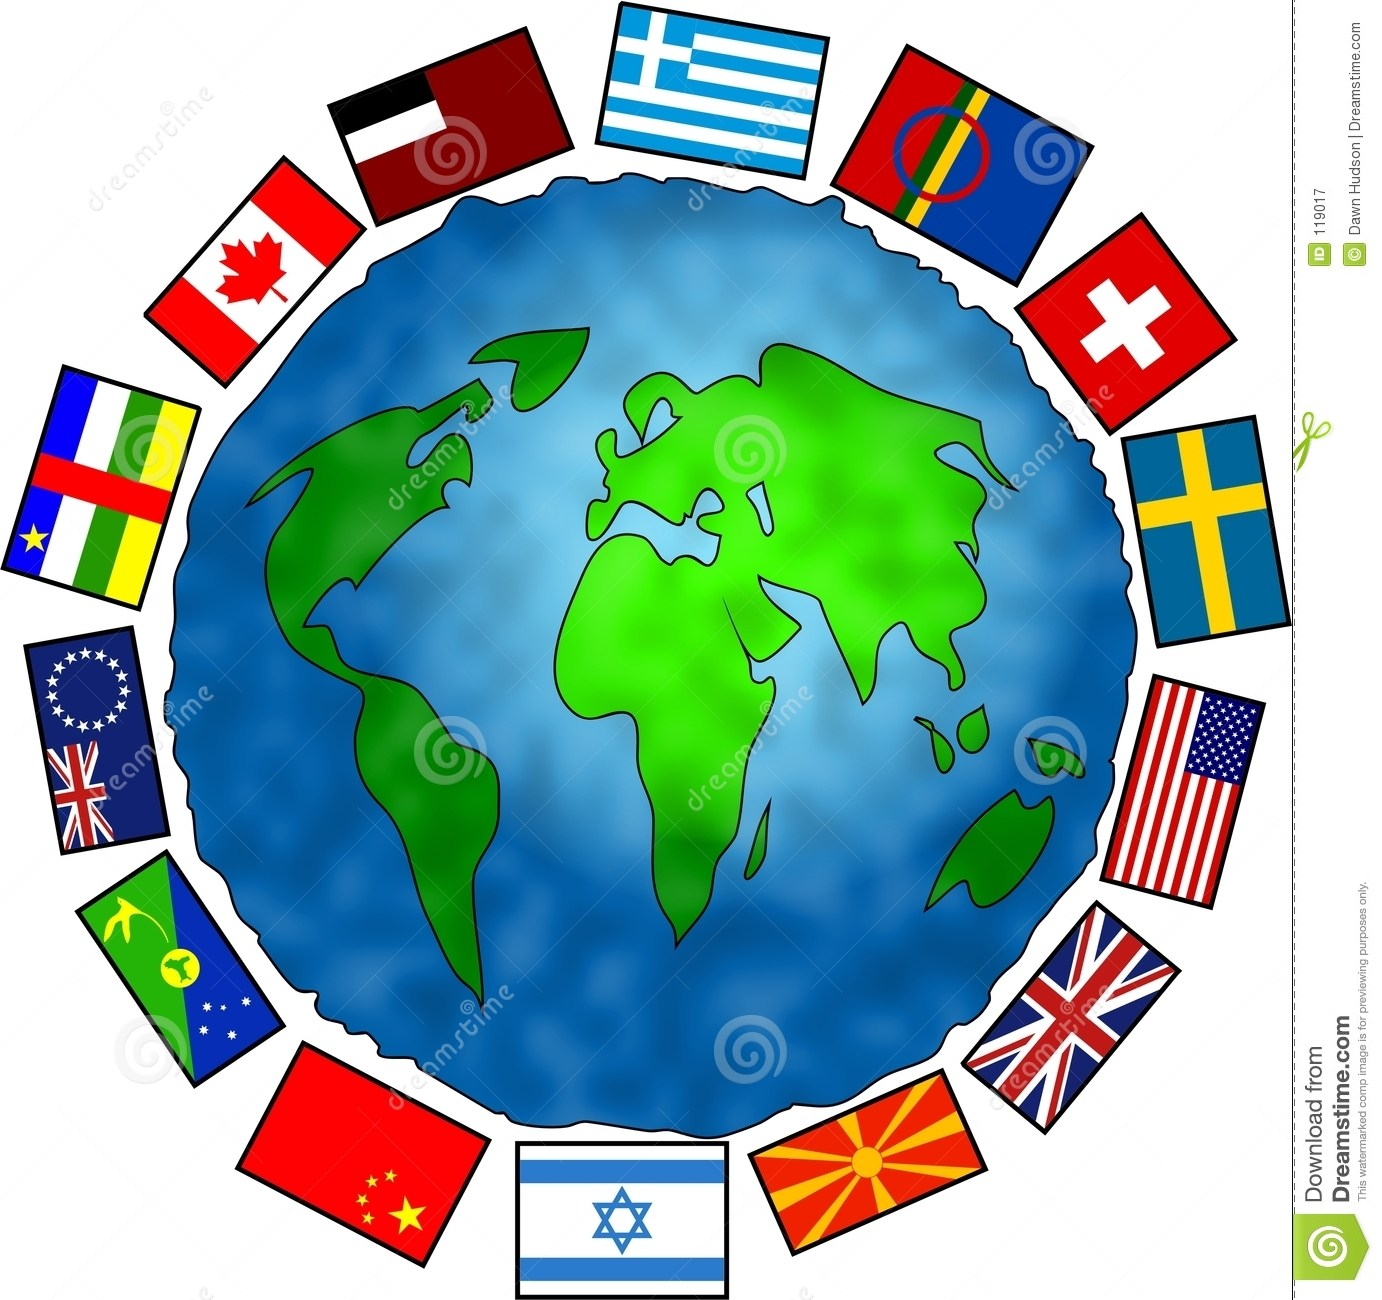 Free clipart flags of the world svg black and white download Free flags of the world clipart 7 » Clipart Portal svg black and white download